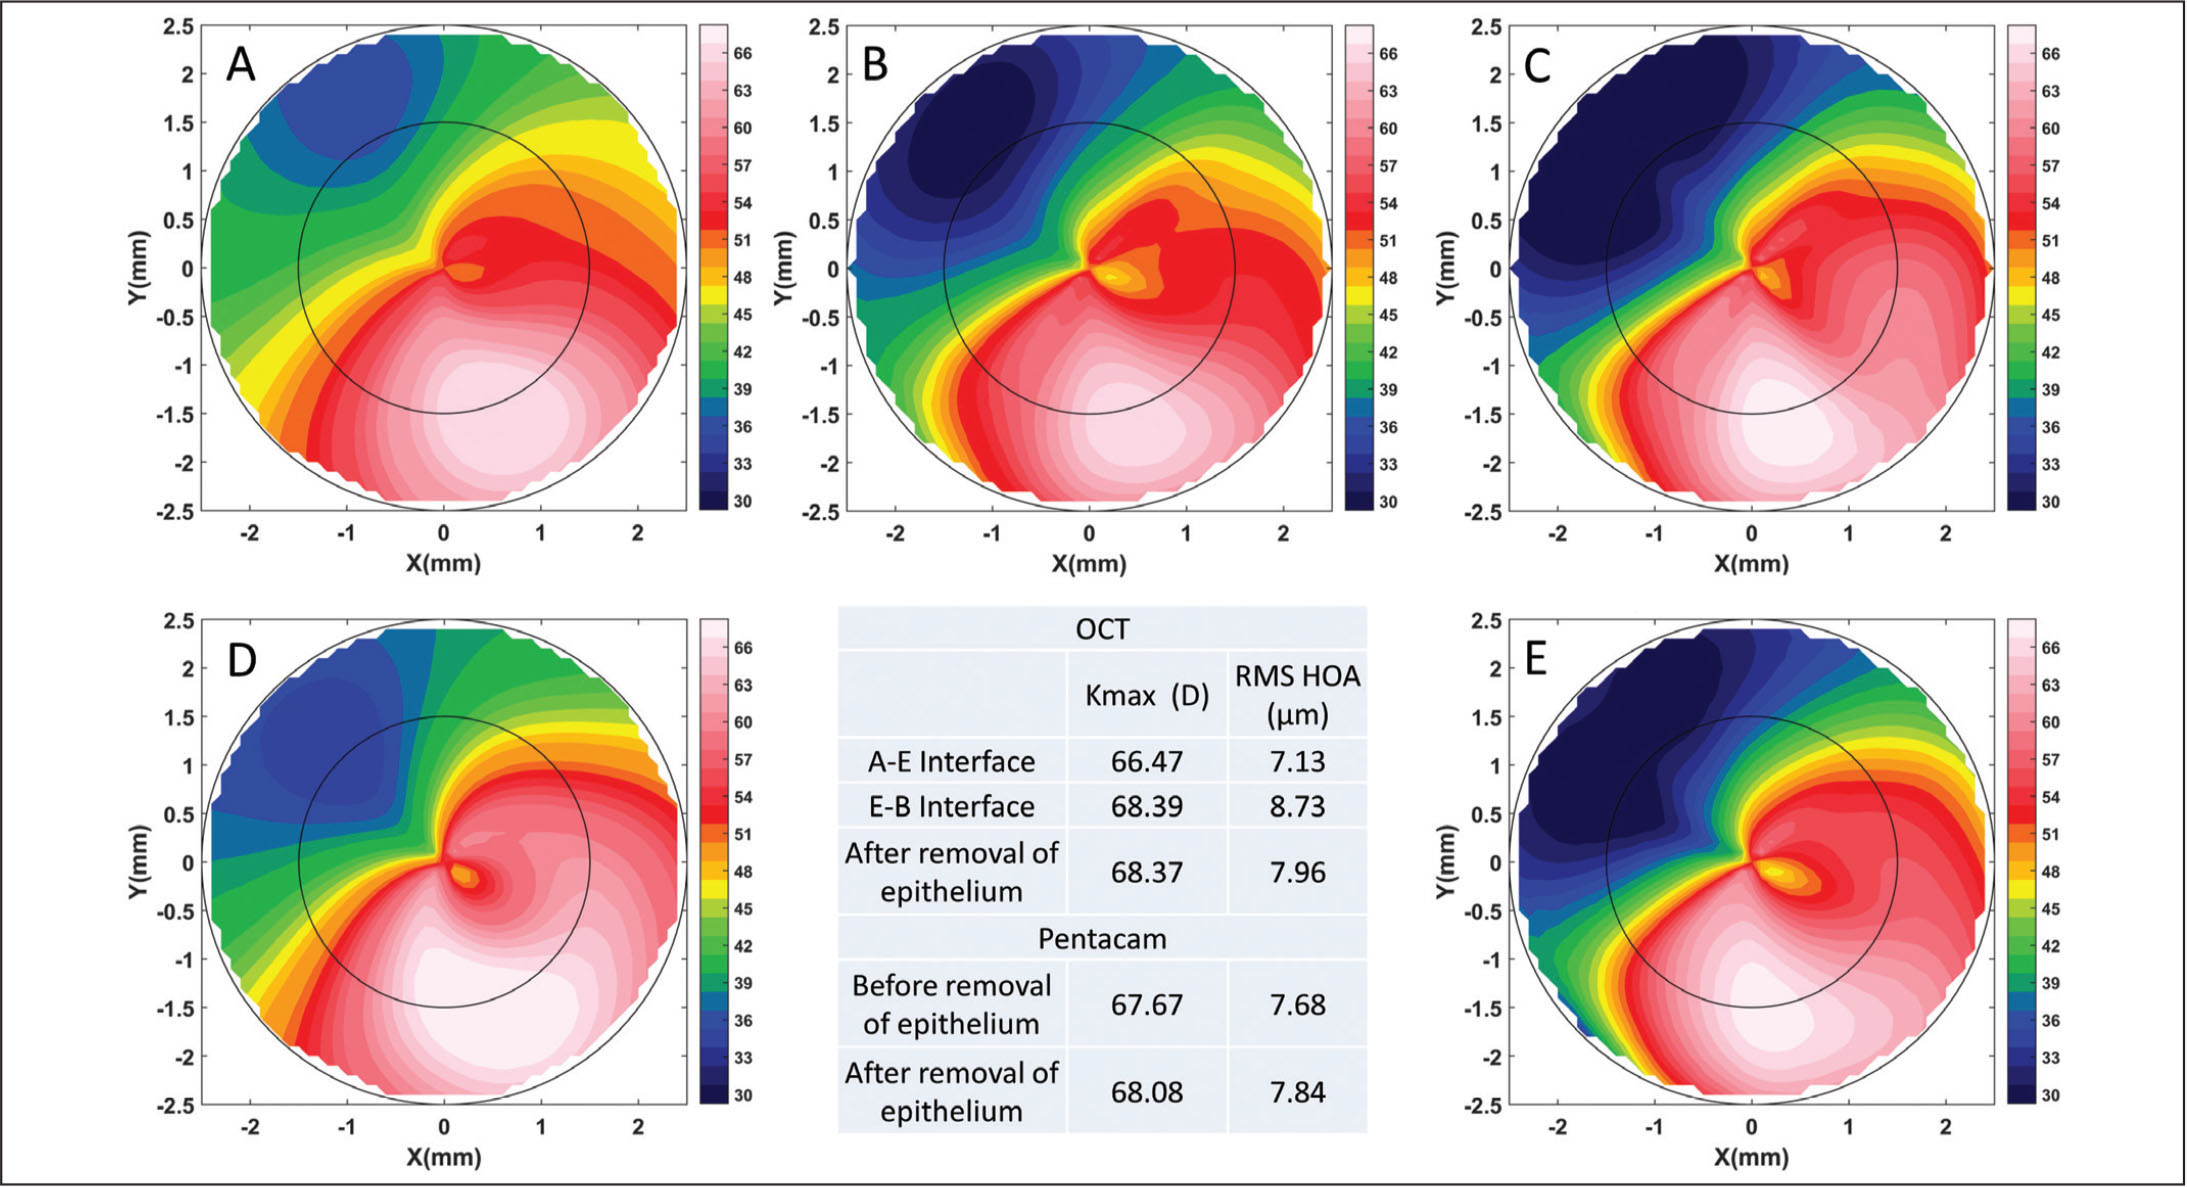 Sample optical coherence tomography (OCT) topography (axial curvature in diopters) of (A) air–epithelium interface (A–E); (B) epithelium–Bowman's layer interface (E-B); and (C) exposed Bowman's layer after removal of epithelium. For the same eye, sample Pentacam (Oculus Optikgeräte, Wetzlar, Germany) topography (D) before and (E) after removal of epithelium. The table lists the maximum curvature (Kmax) and root mean square of higher order aberrations (RMS HOA). D = diopters